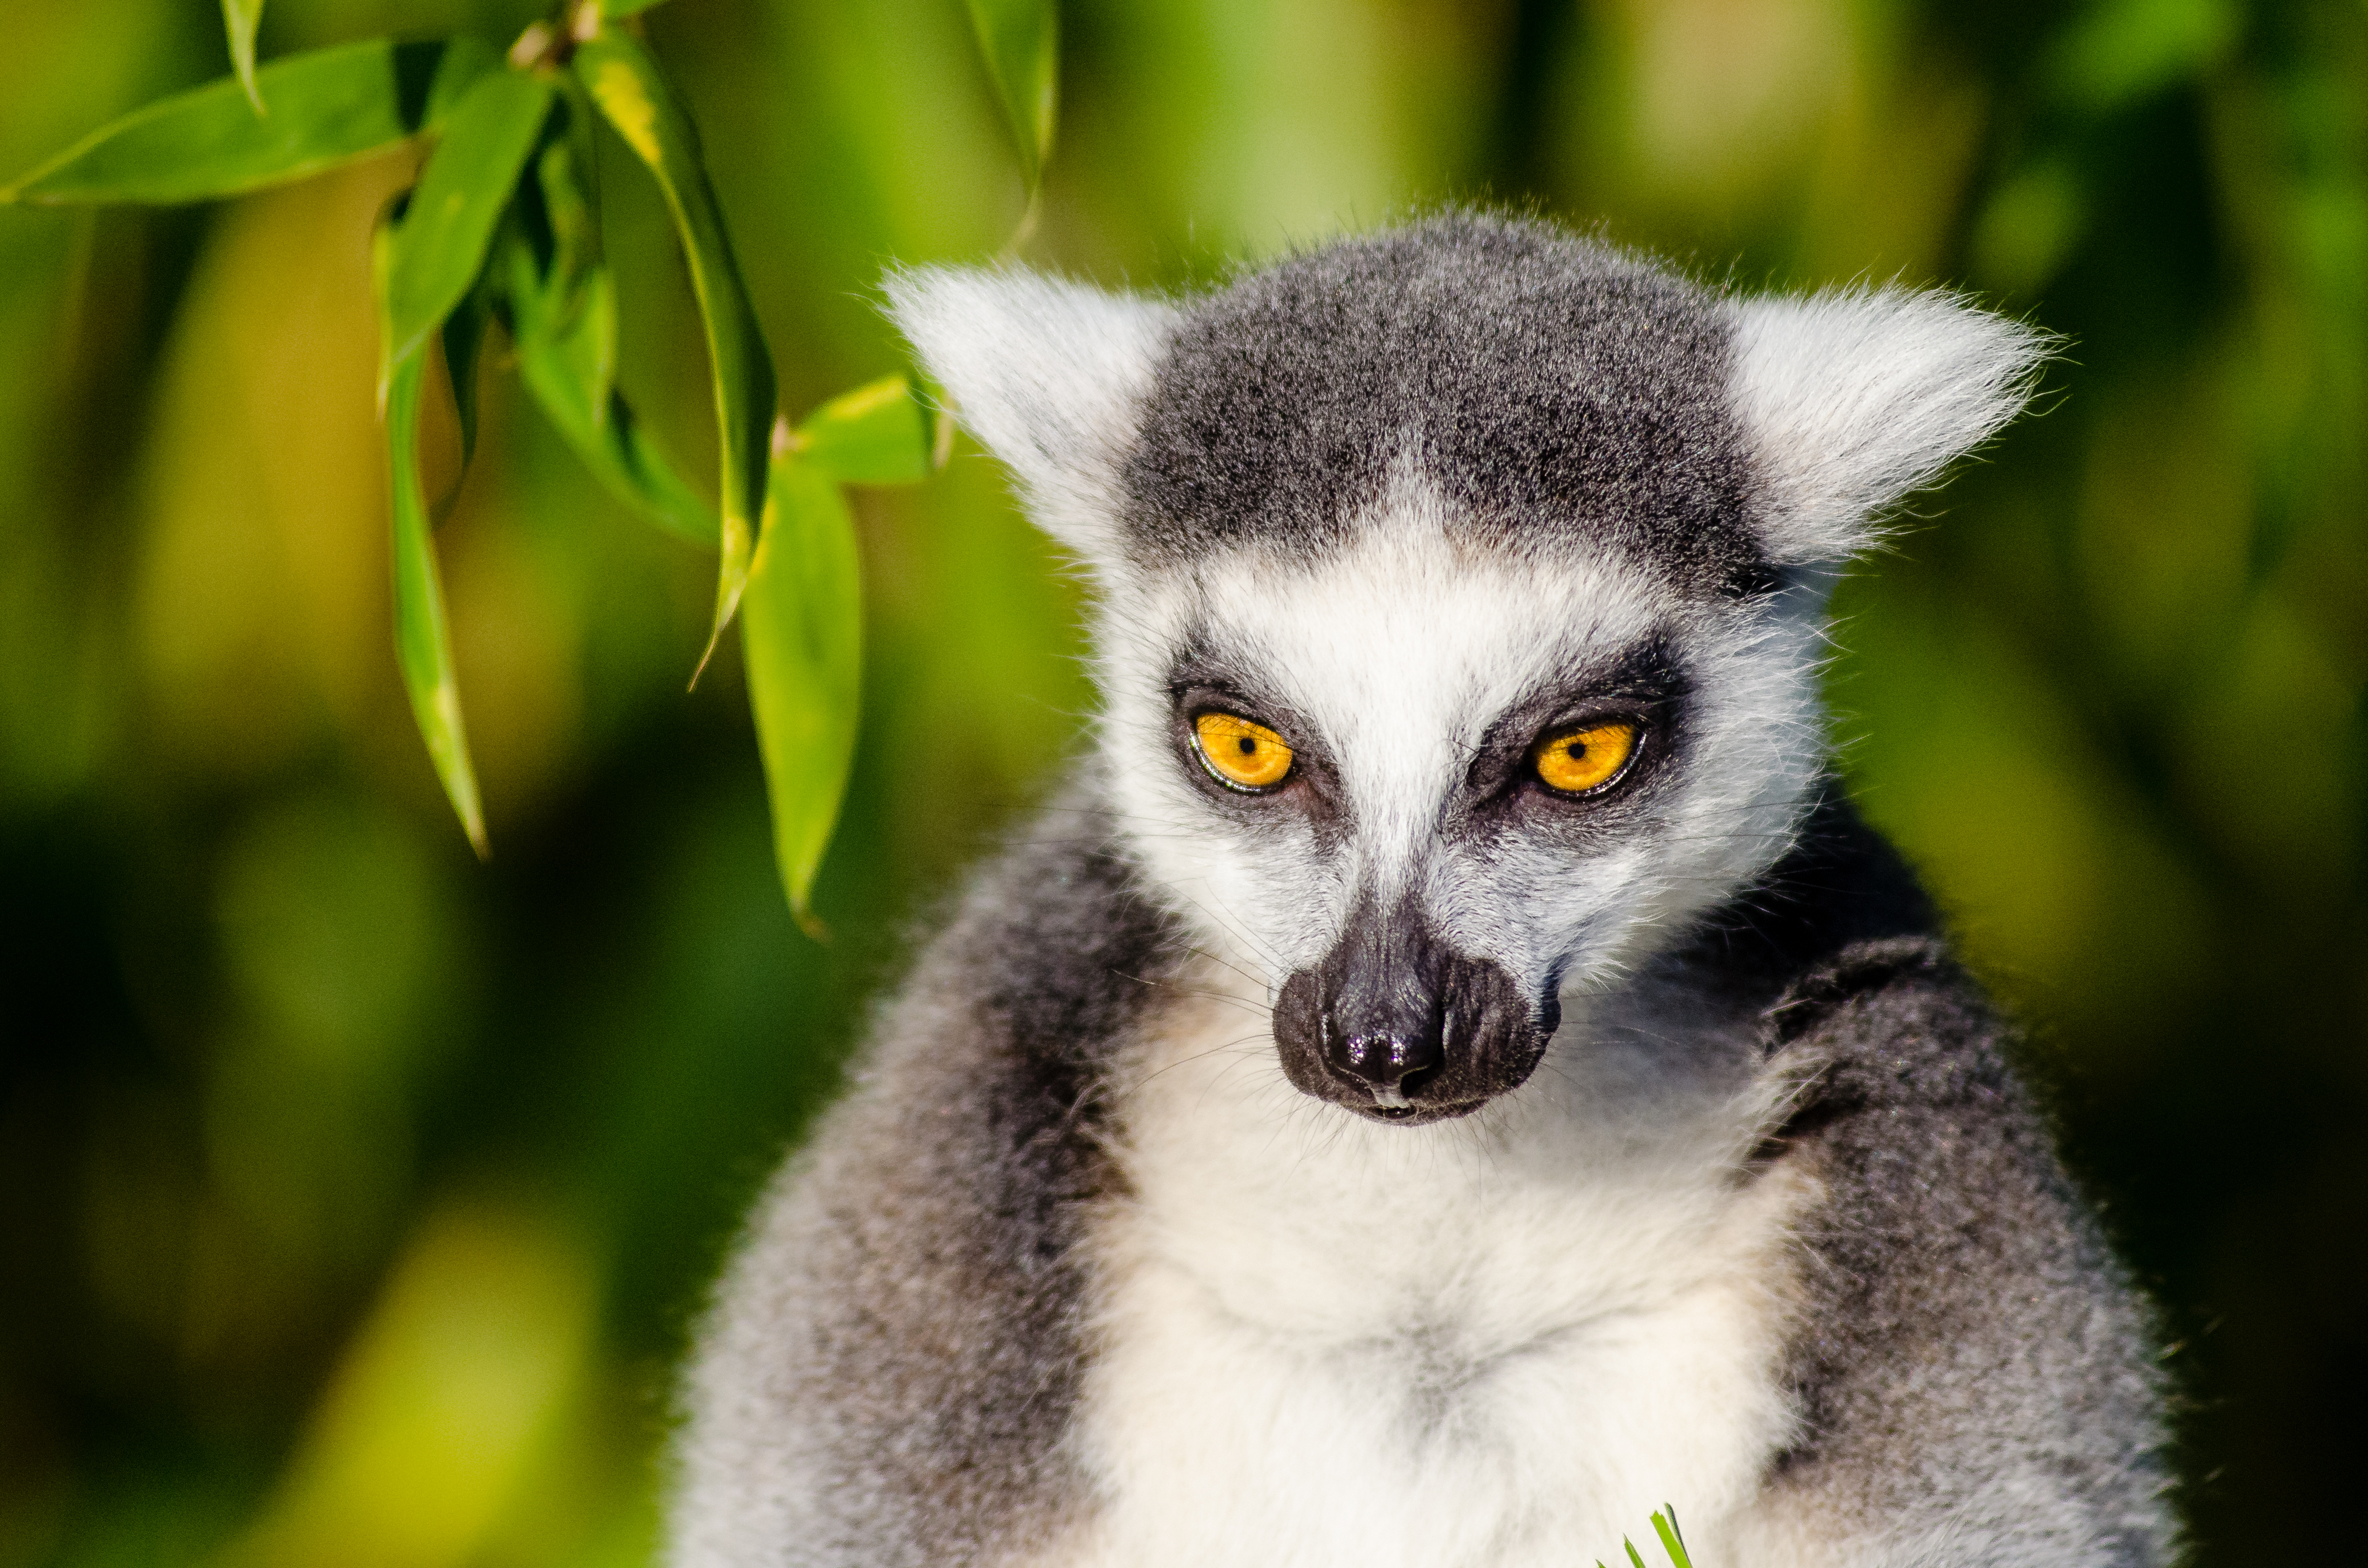 Cute Animal Wallpapers Free Download Two Lemurs 183 Free Stock Photo